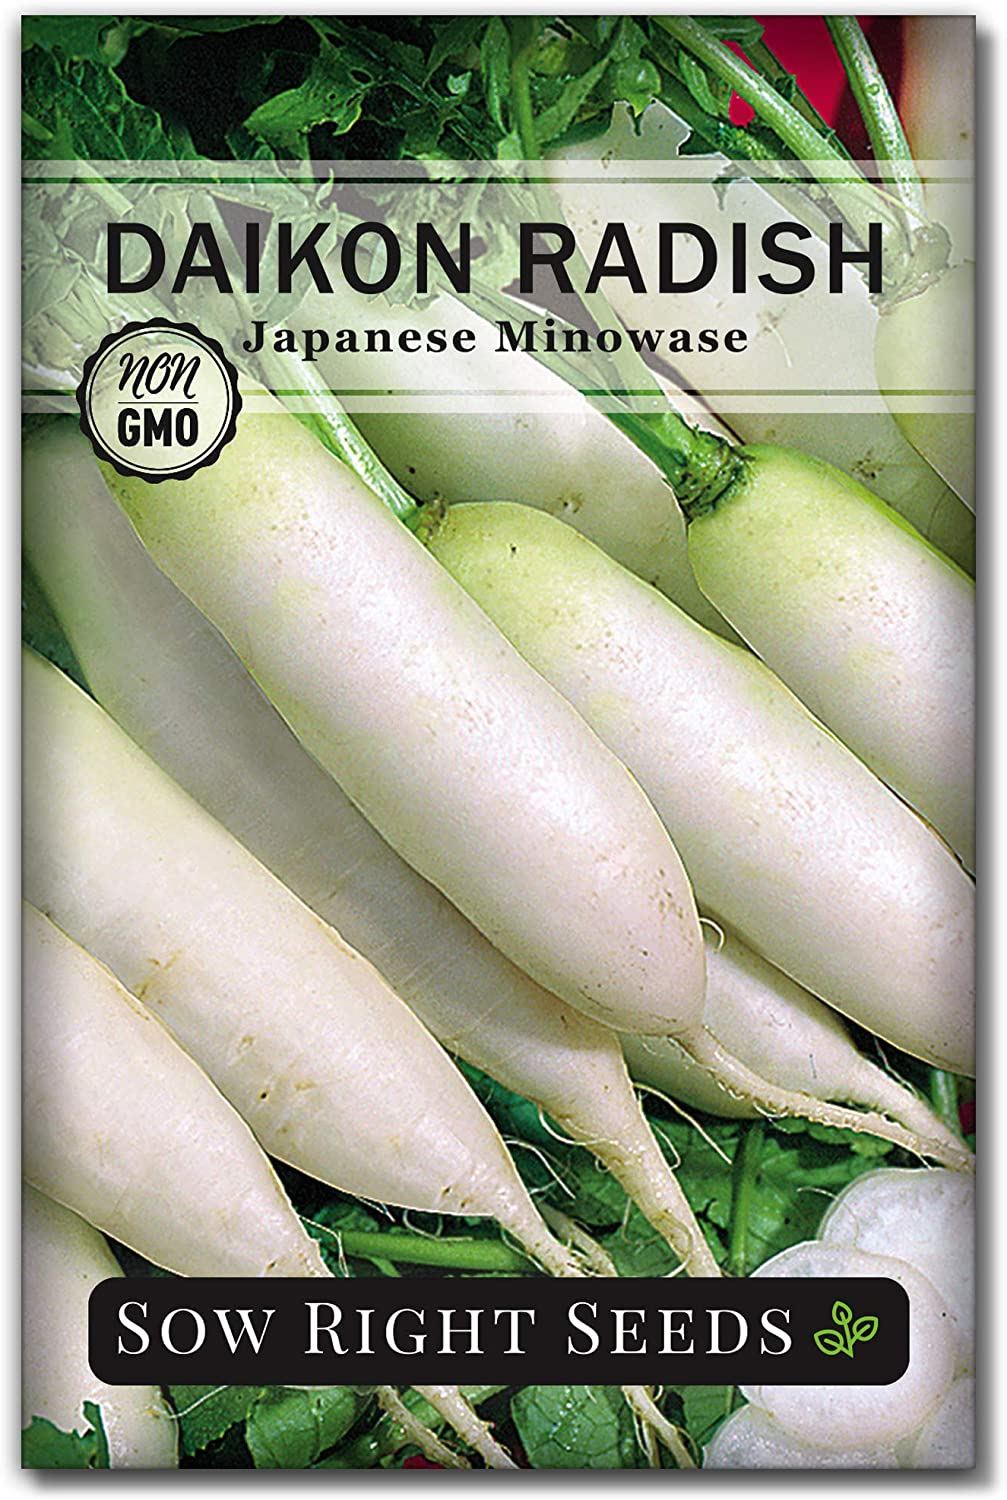 Sow Right Seeds - Japanese Minowase Daikon Radish Seed for Planting - Non-GMO Heirloom Packet with Instructions to Plant a Home Vegetable Garden - Great Gardening Gift (1)